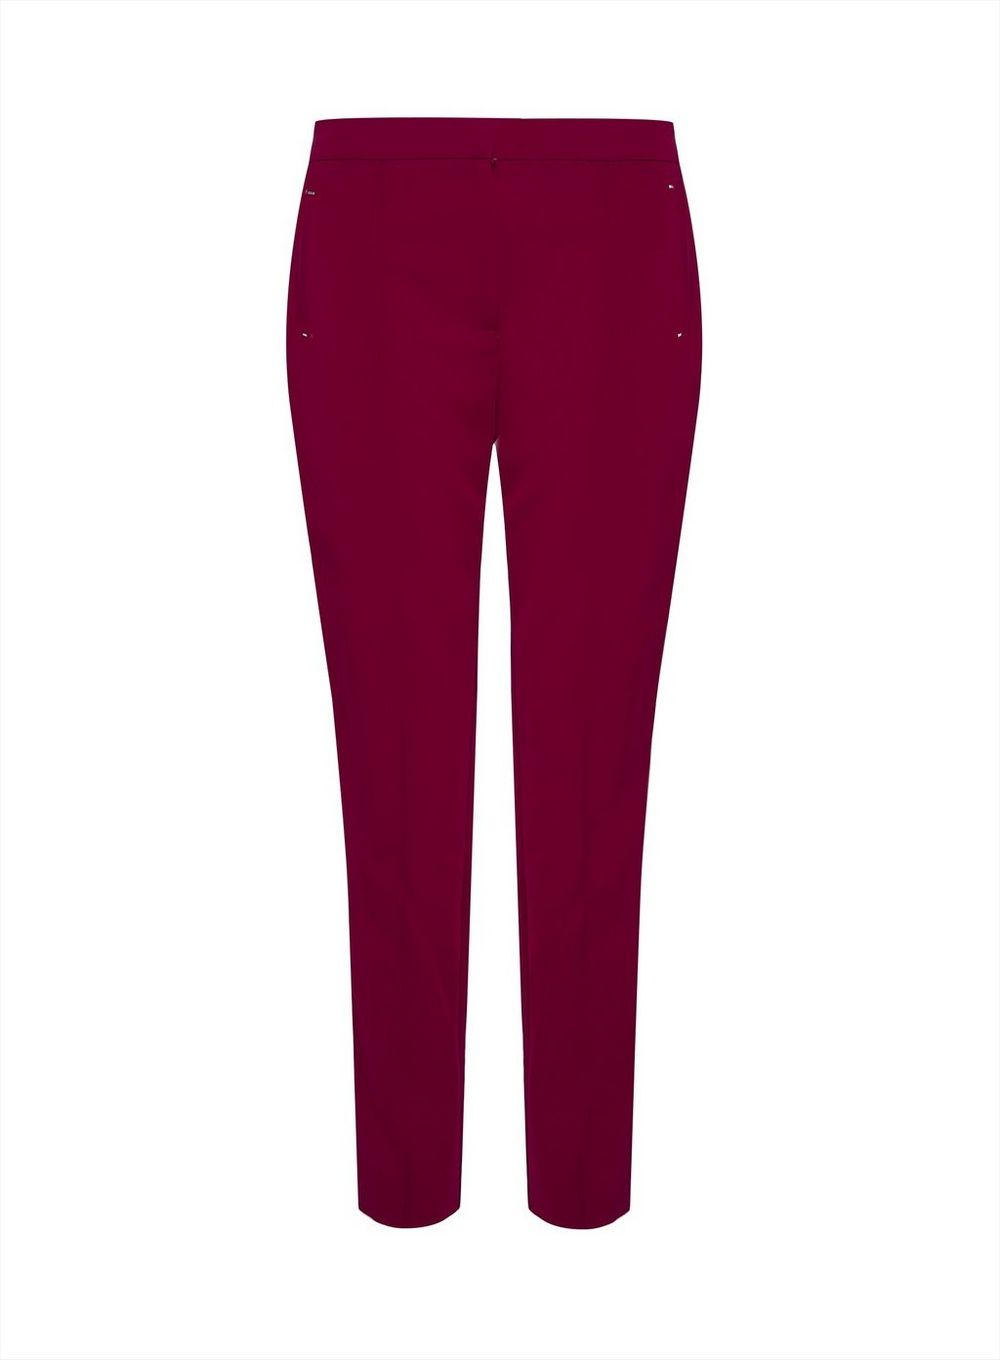 Dorothy Perkins Womens Tall Crimson Tailored Trousers Bottoms Pants Formal Work